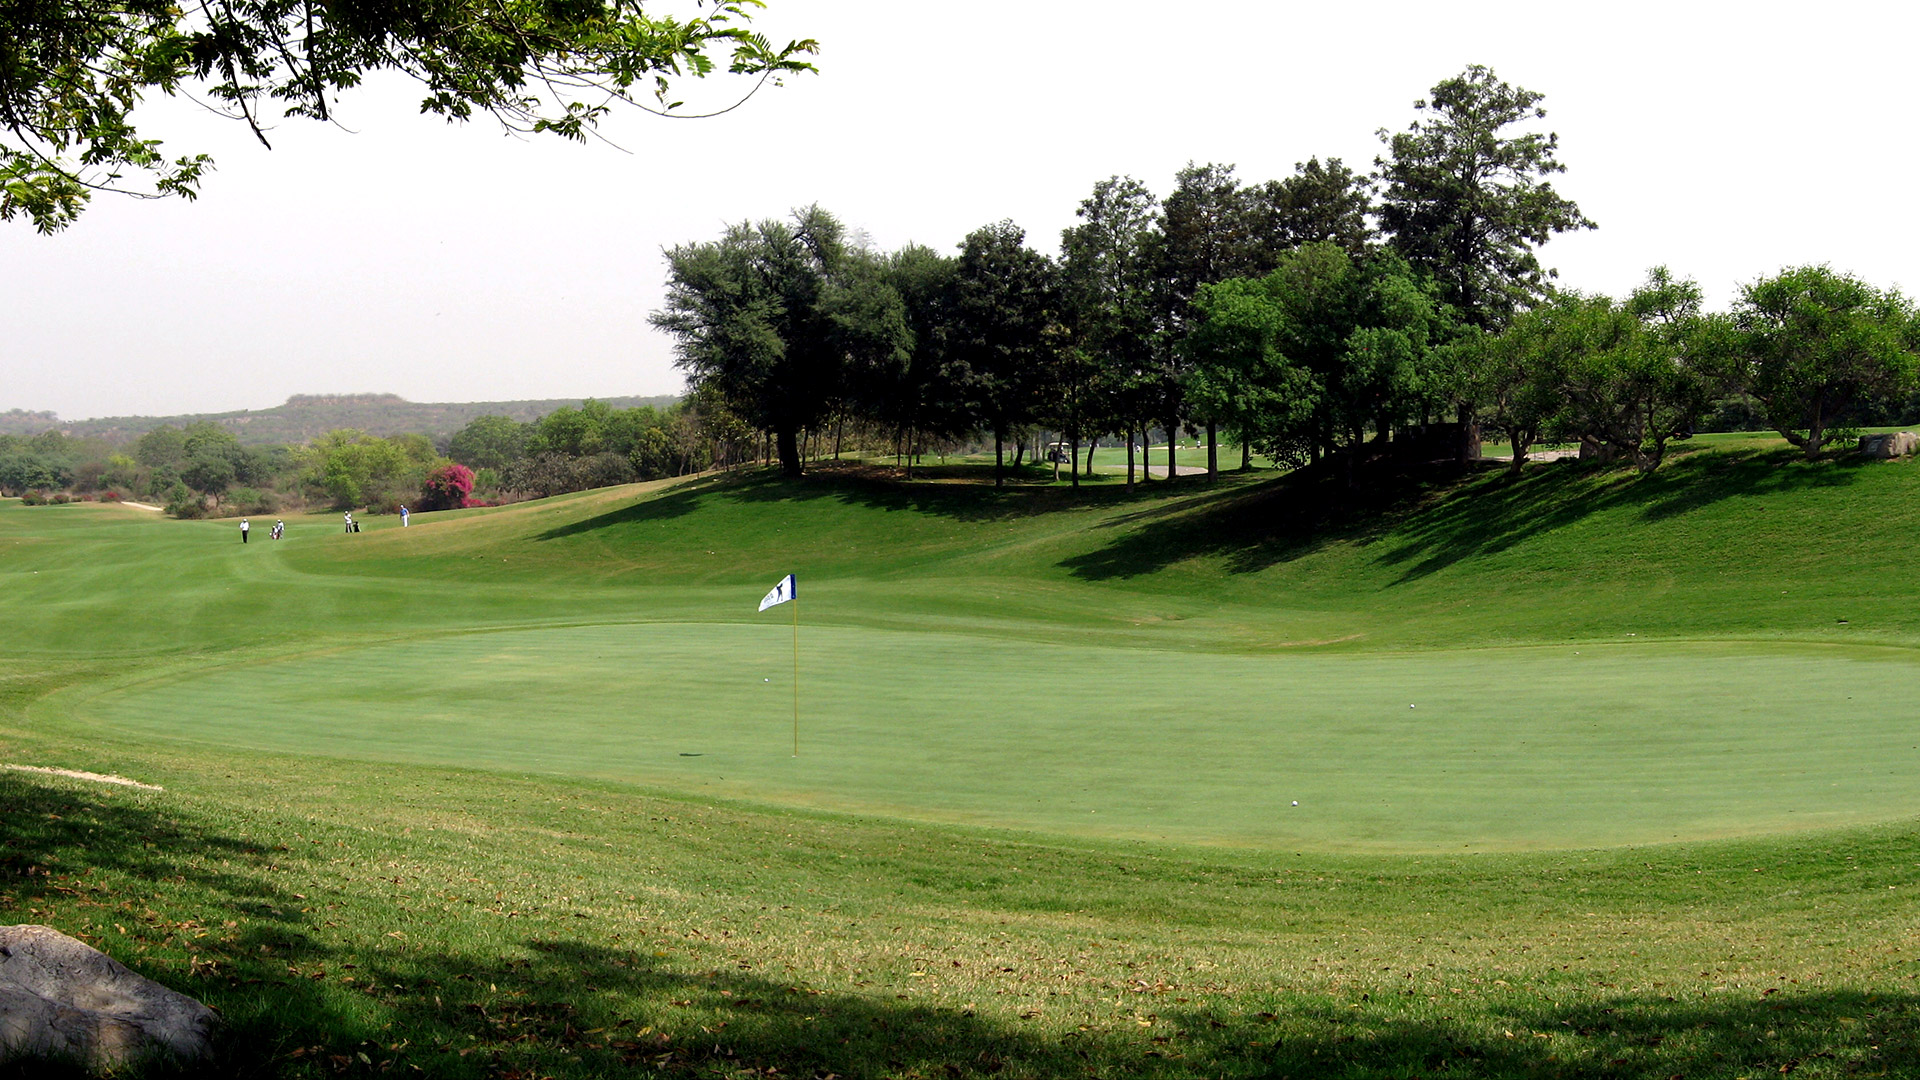 ITC Classic Golf Resort, Manesar, Gurgaon